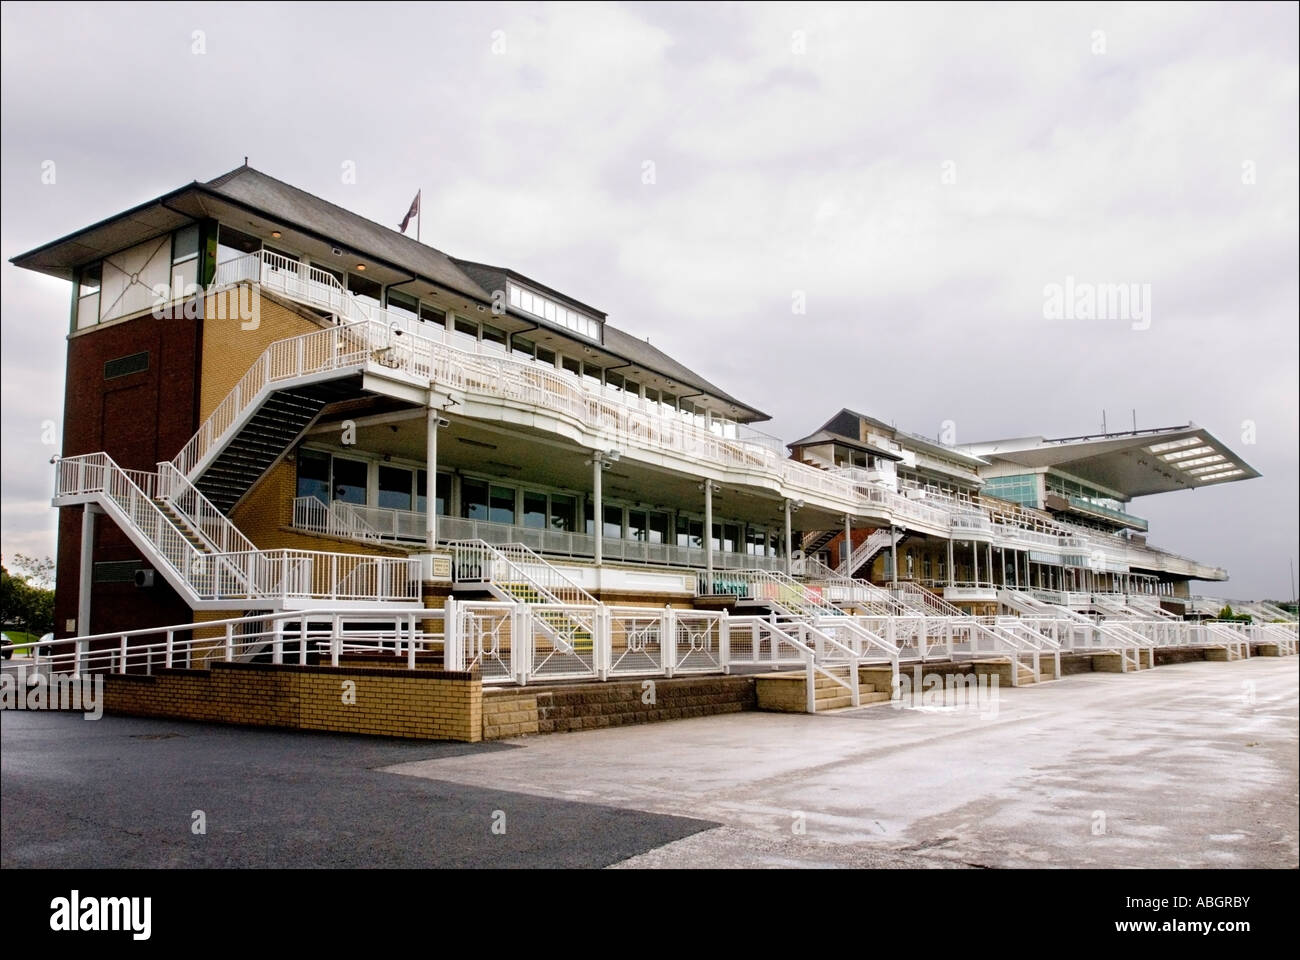 The old main stand at Aintree Racecourse home of the Grand National steeplechase with the Royal Box in the centre Stock Photo